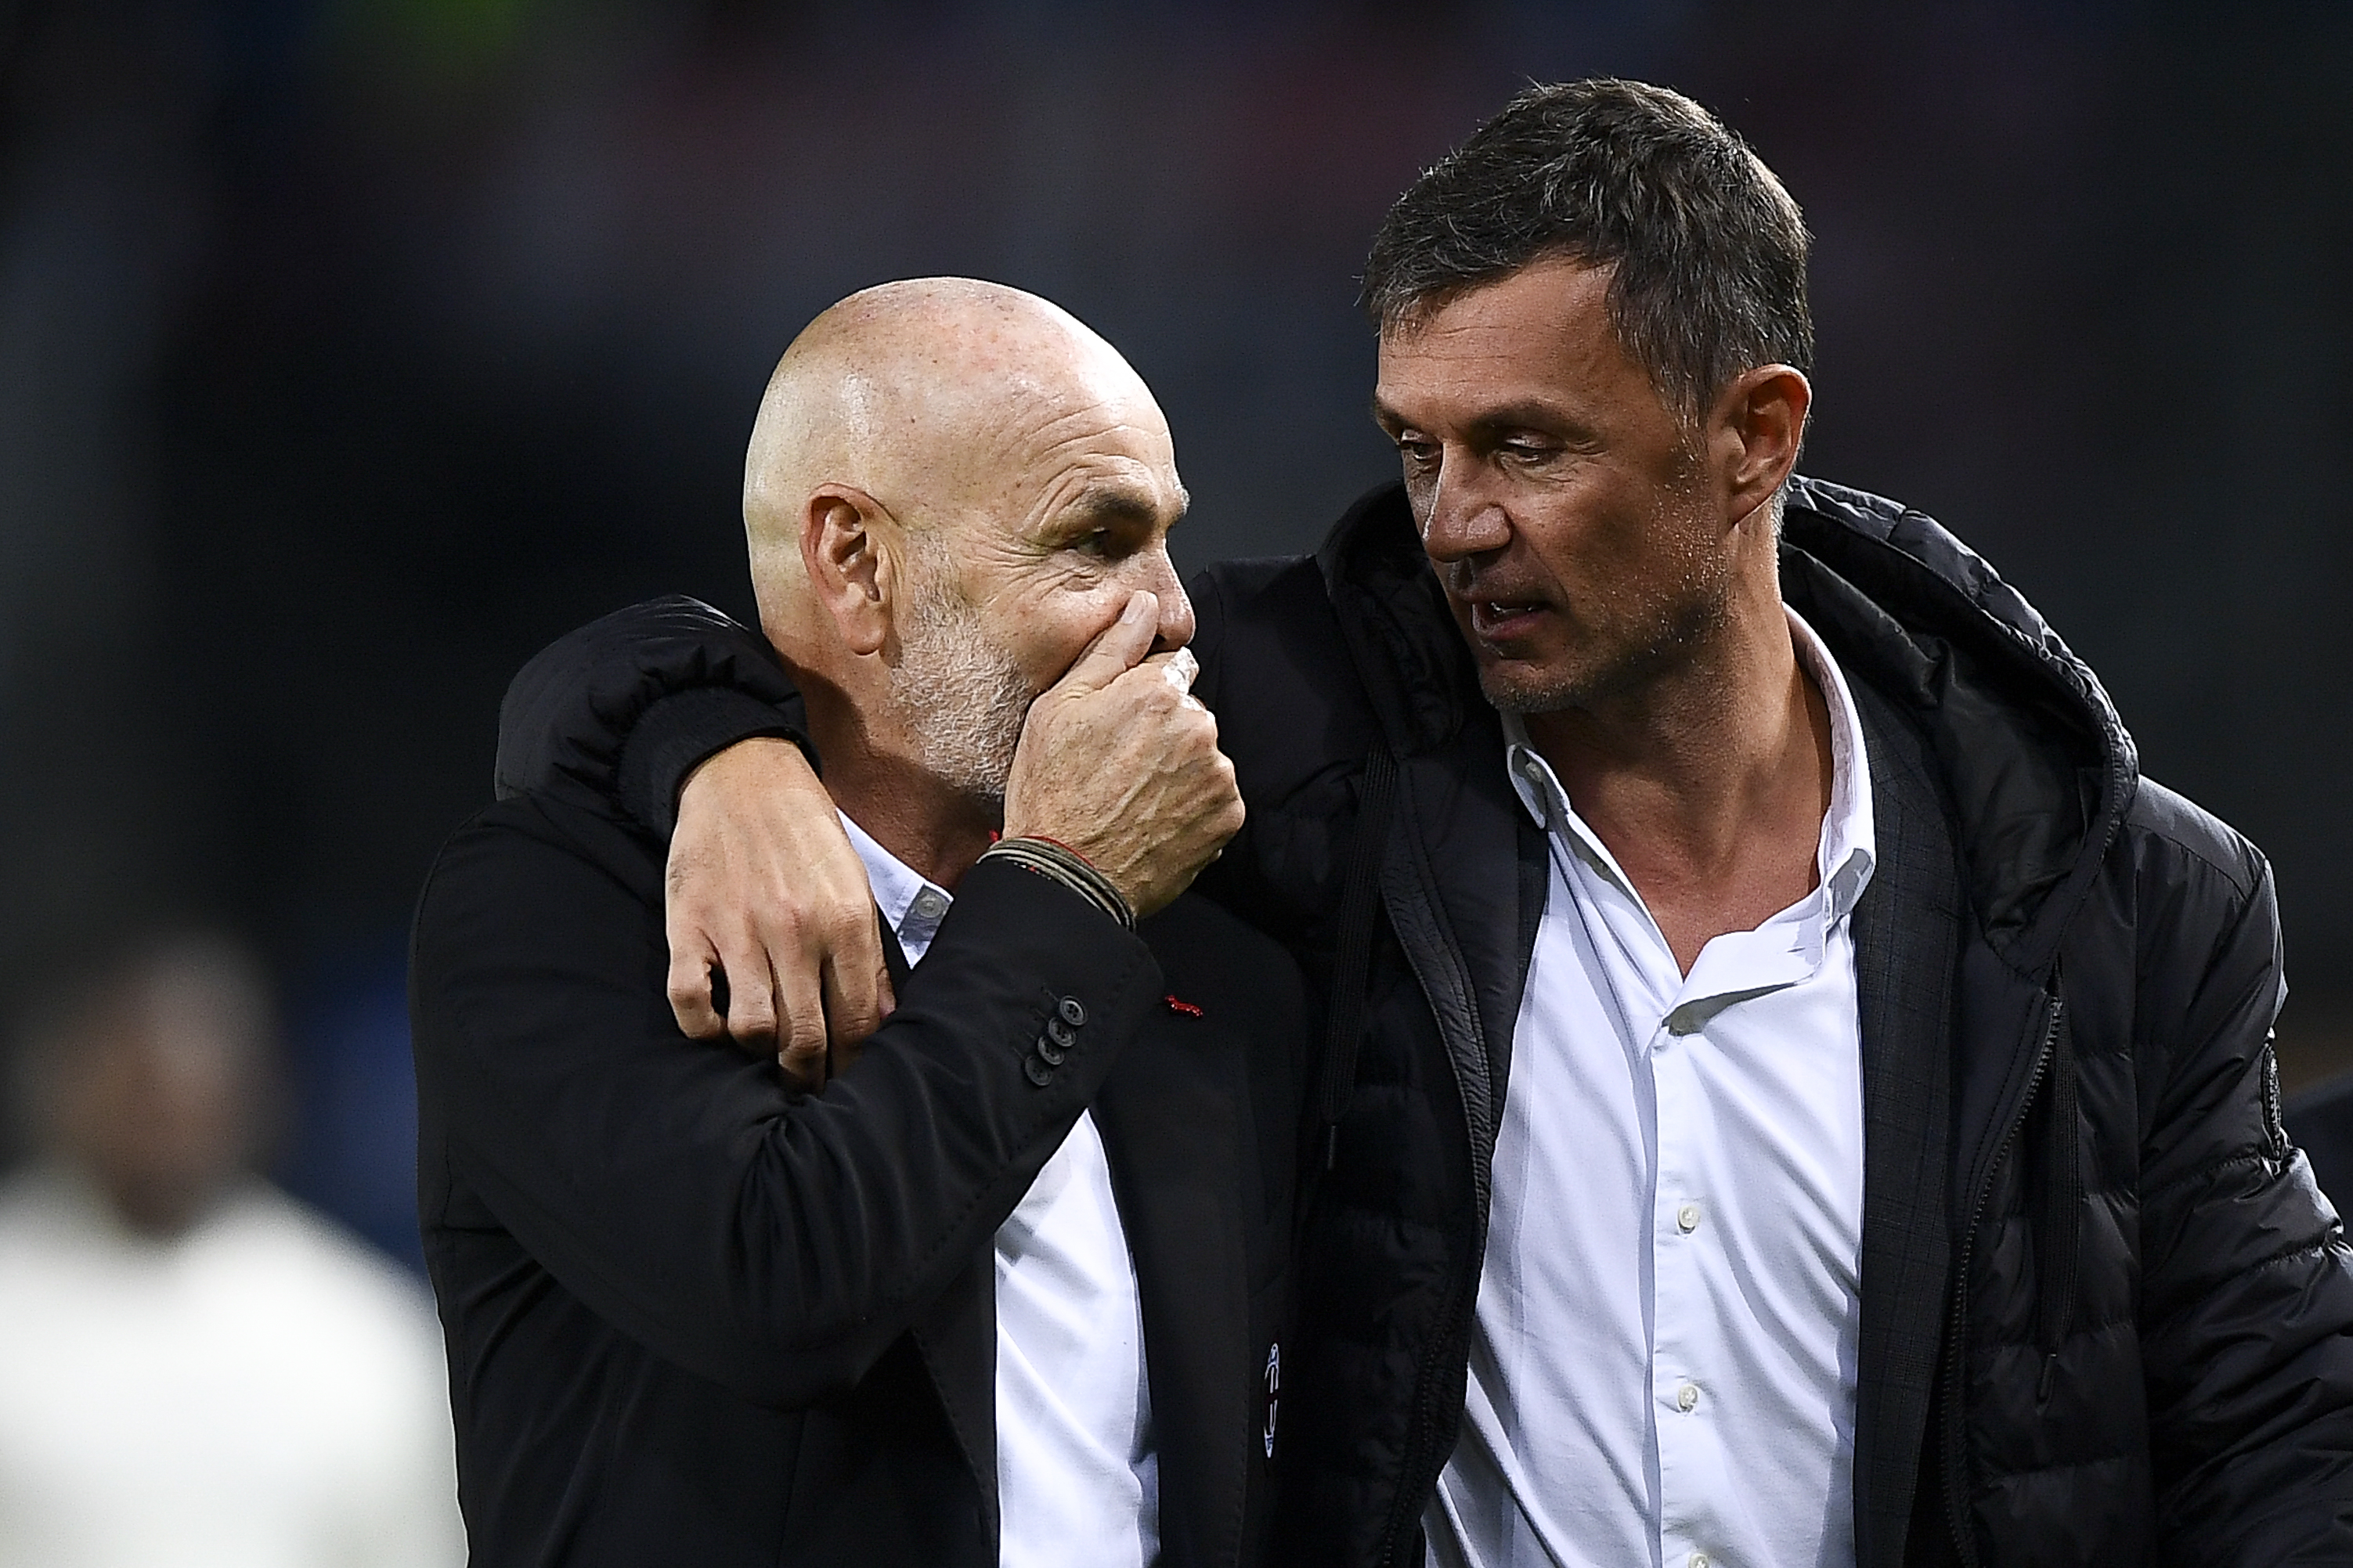 Stefano Pioli (L), head coach of AC Milan, speaks with Paolo...